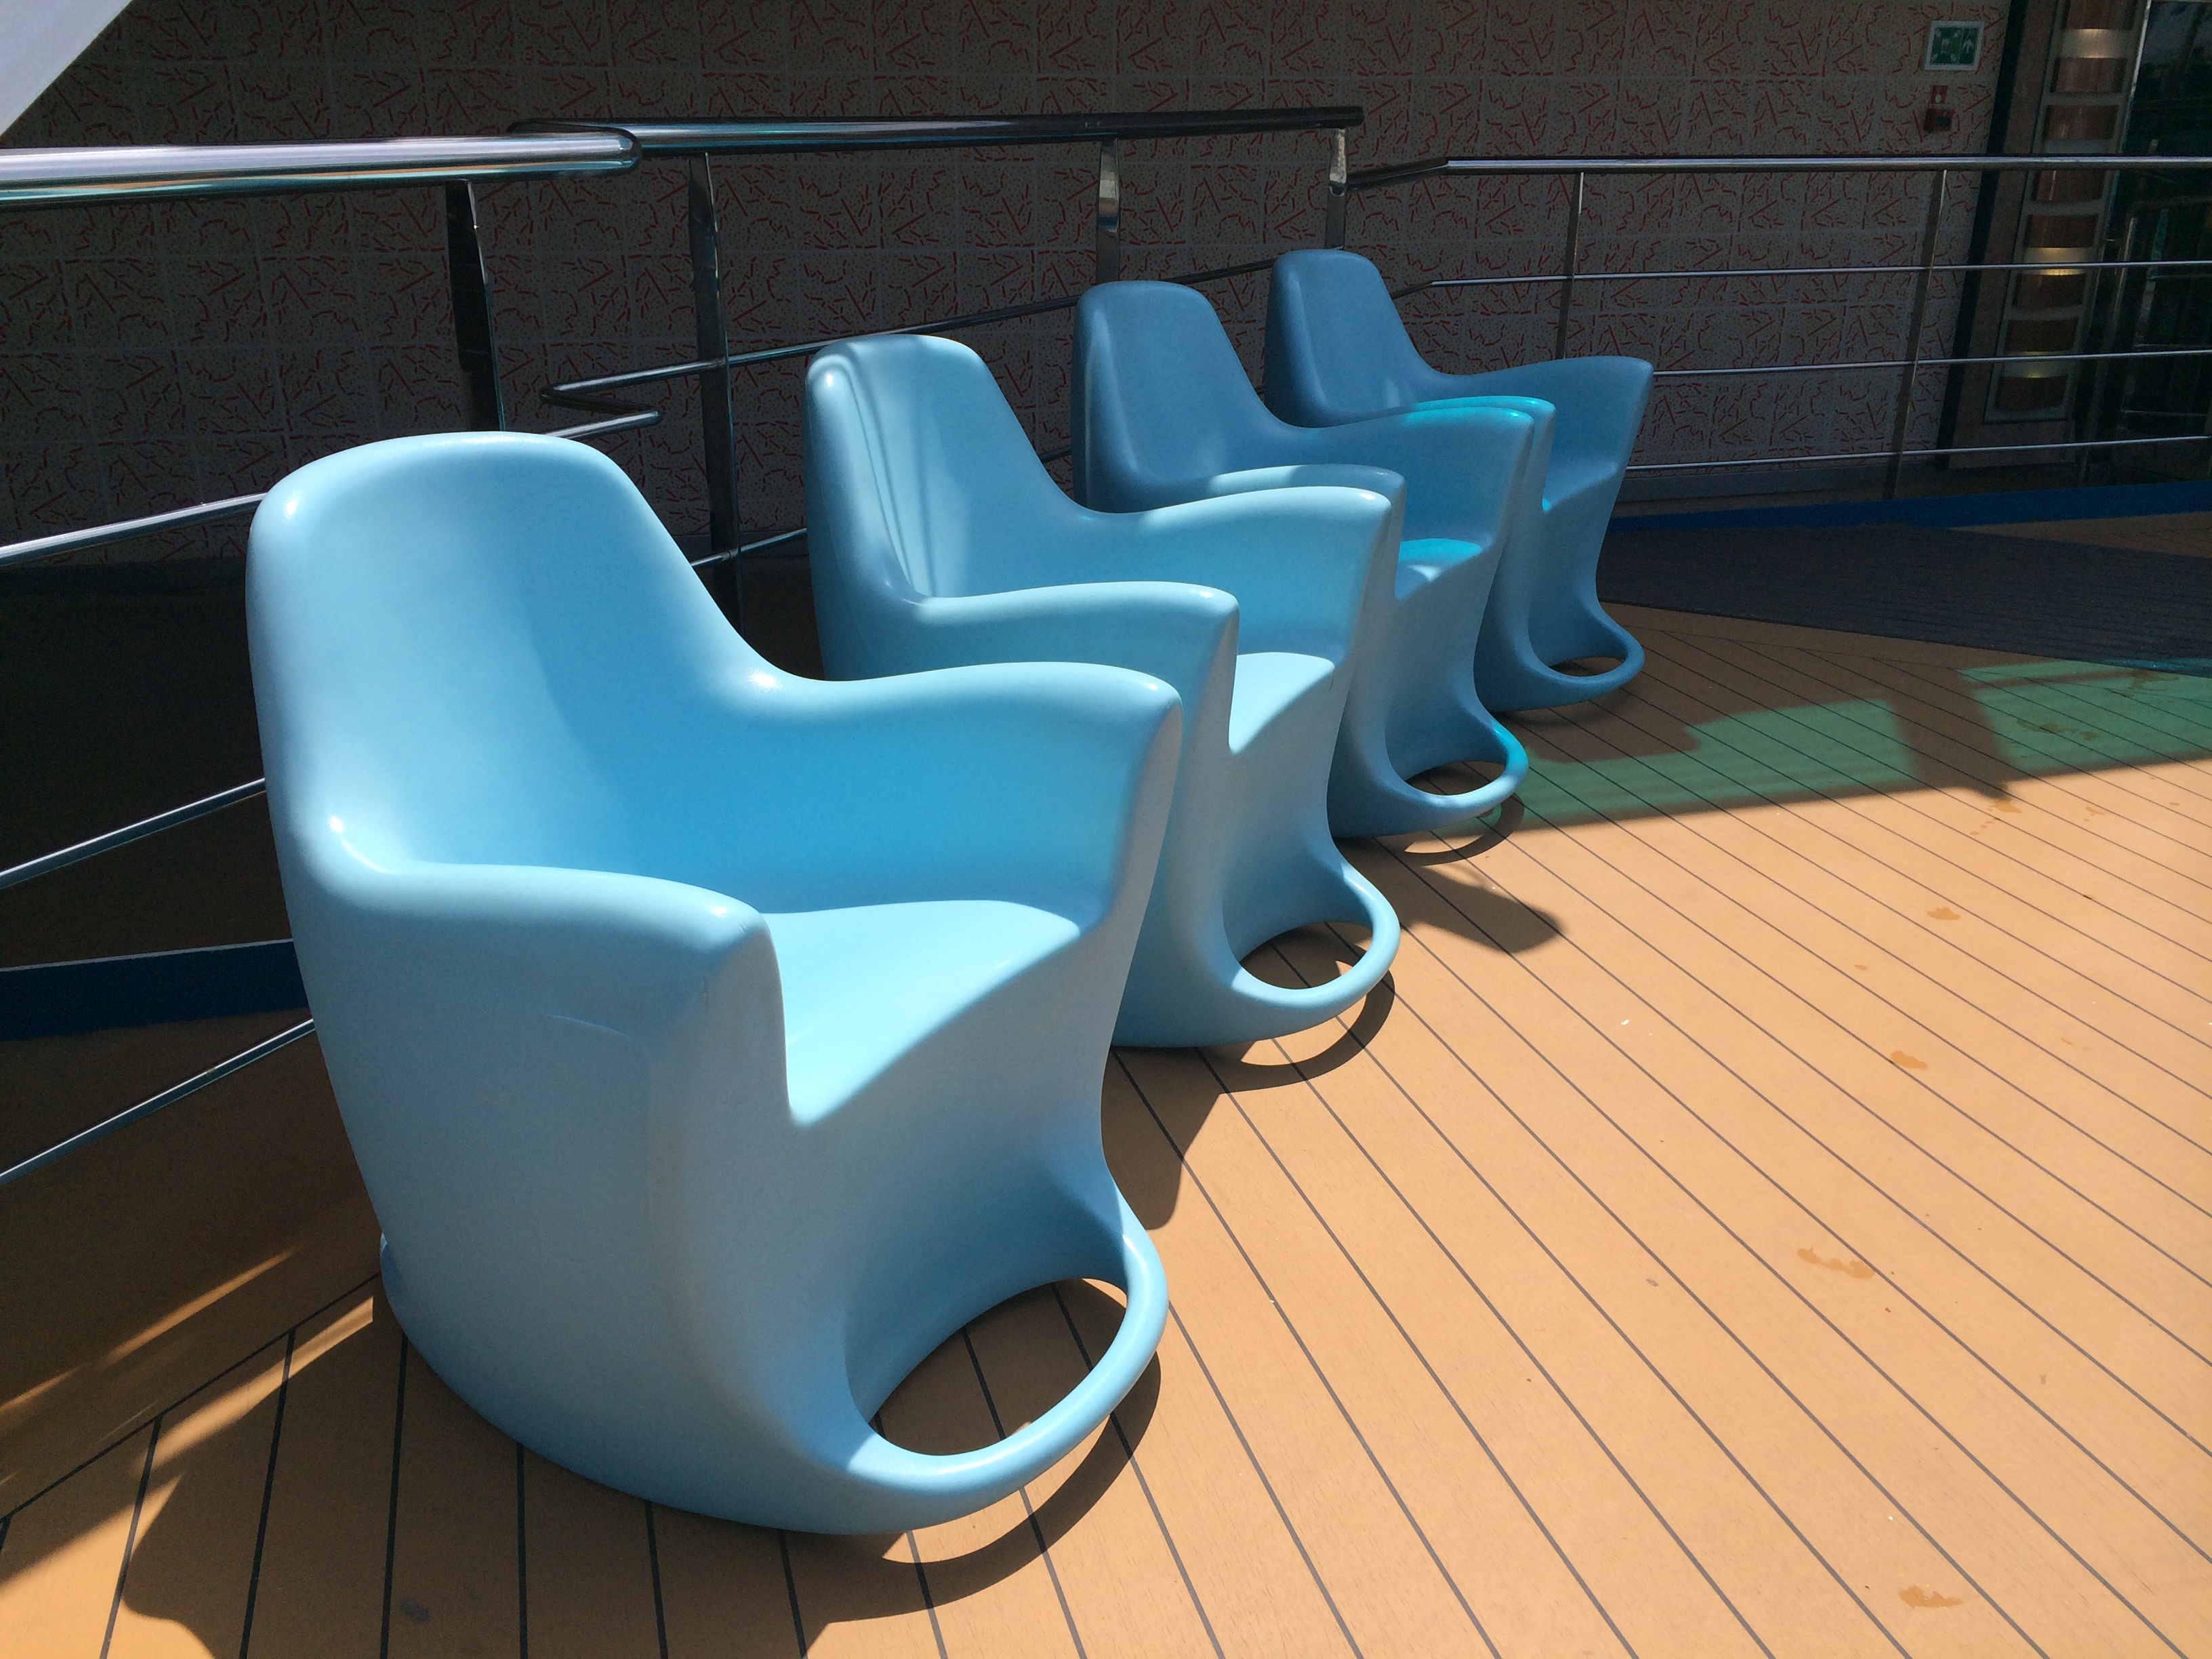 amazing noodle chair patio furniture swivel rocker day 6  carnival dream cruise report western caribbean